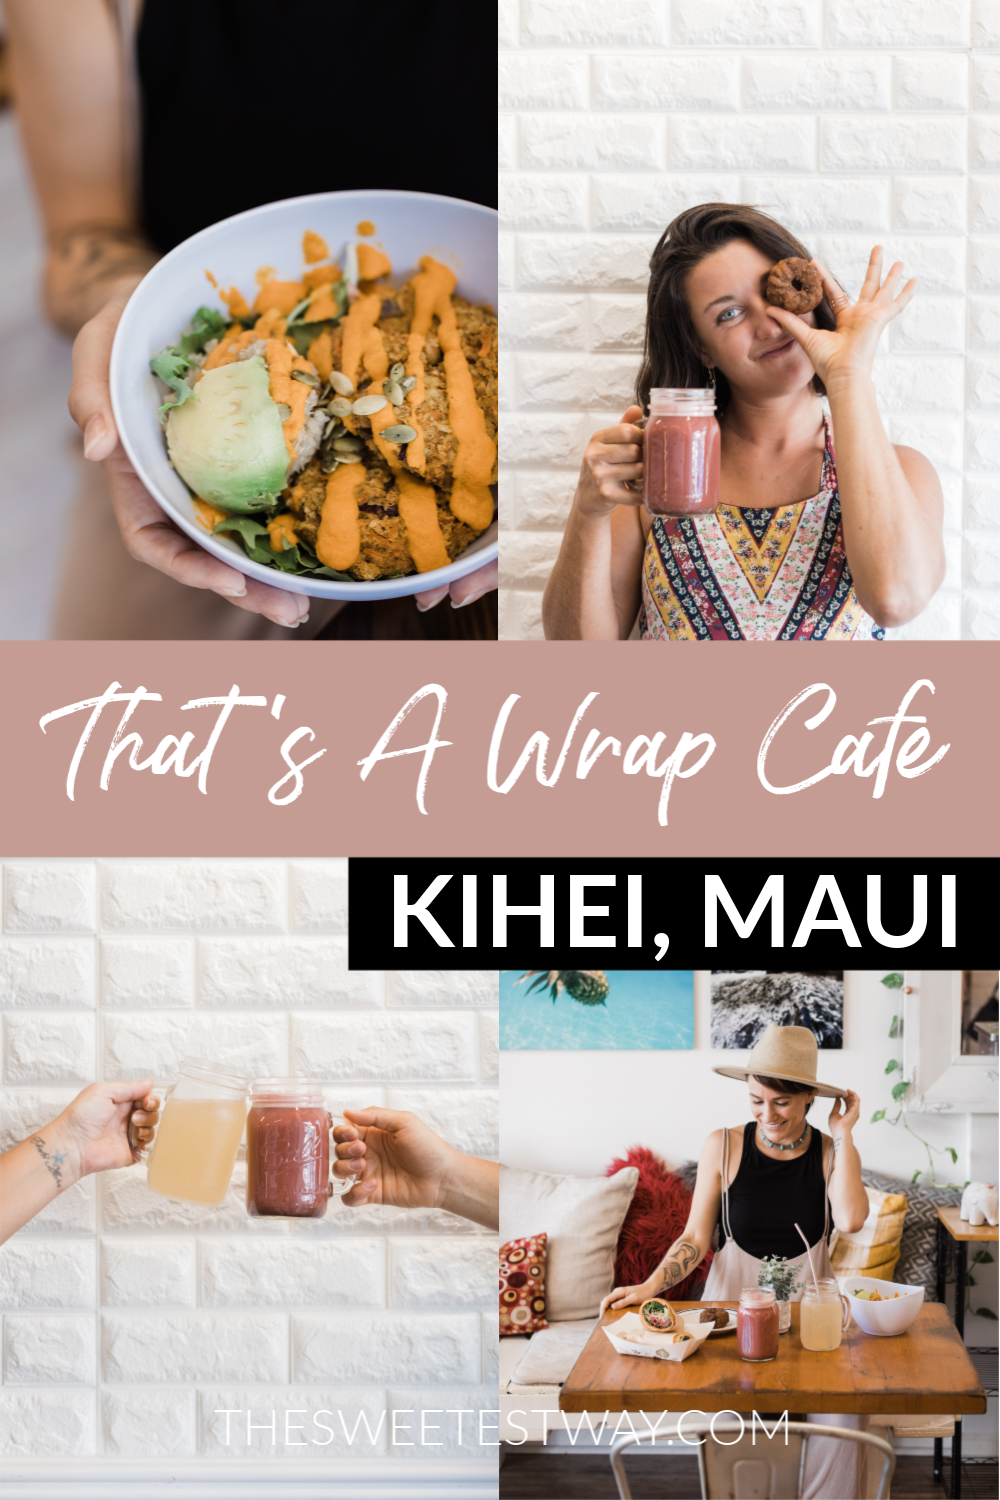 Healthy food in Kihei, Maui at That's A Wrap Cafe. Vegetarian and vegan-friendly, fresh local ingredients, kombucha on tap, gluten-free options, and delicious healthy desserts! Located in South Kihei.